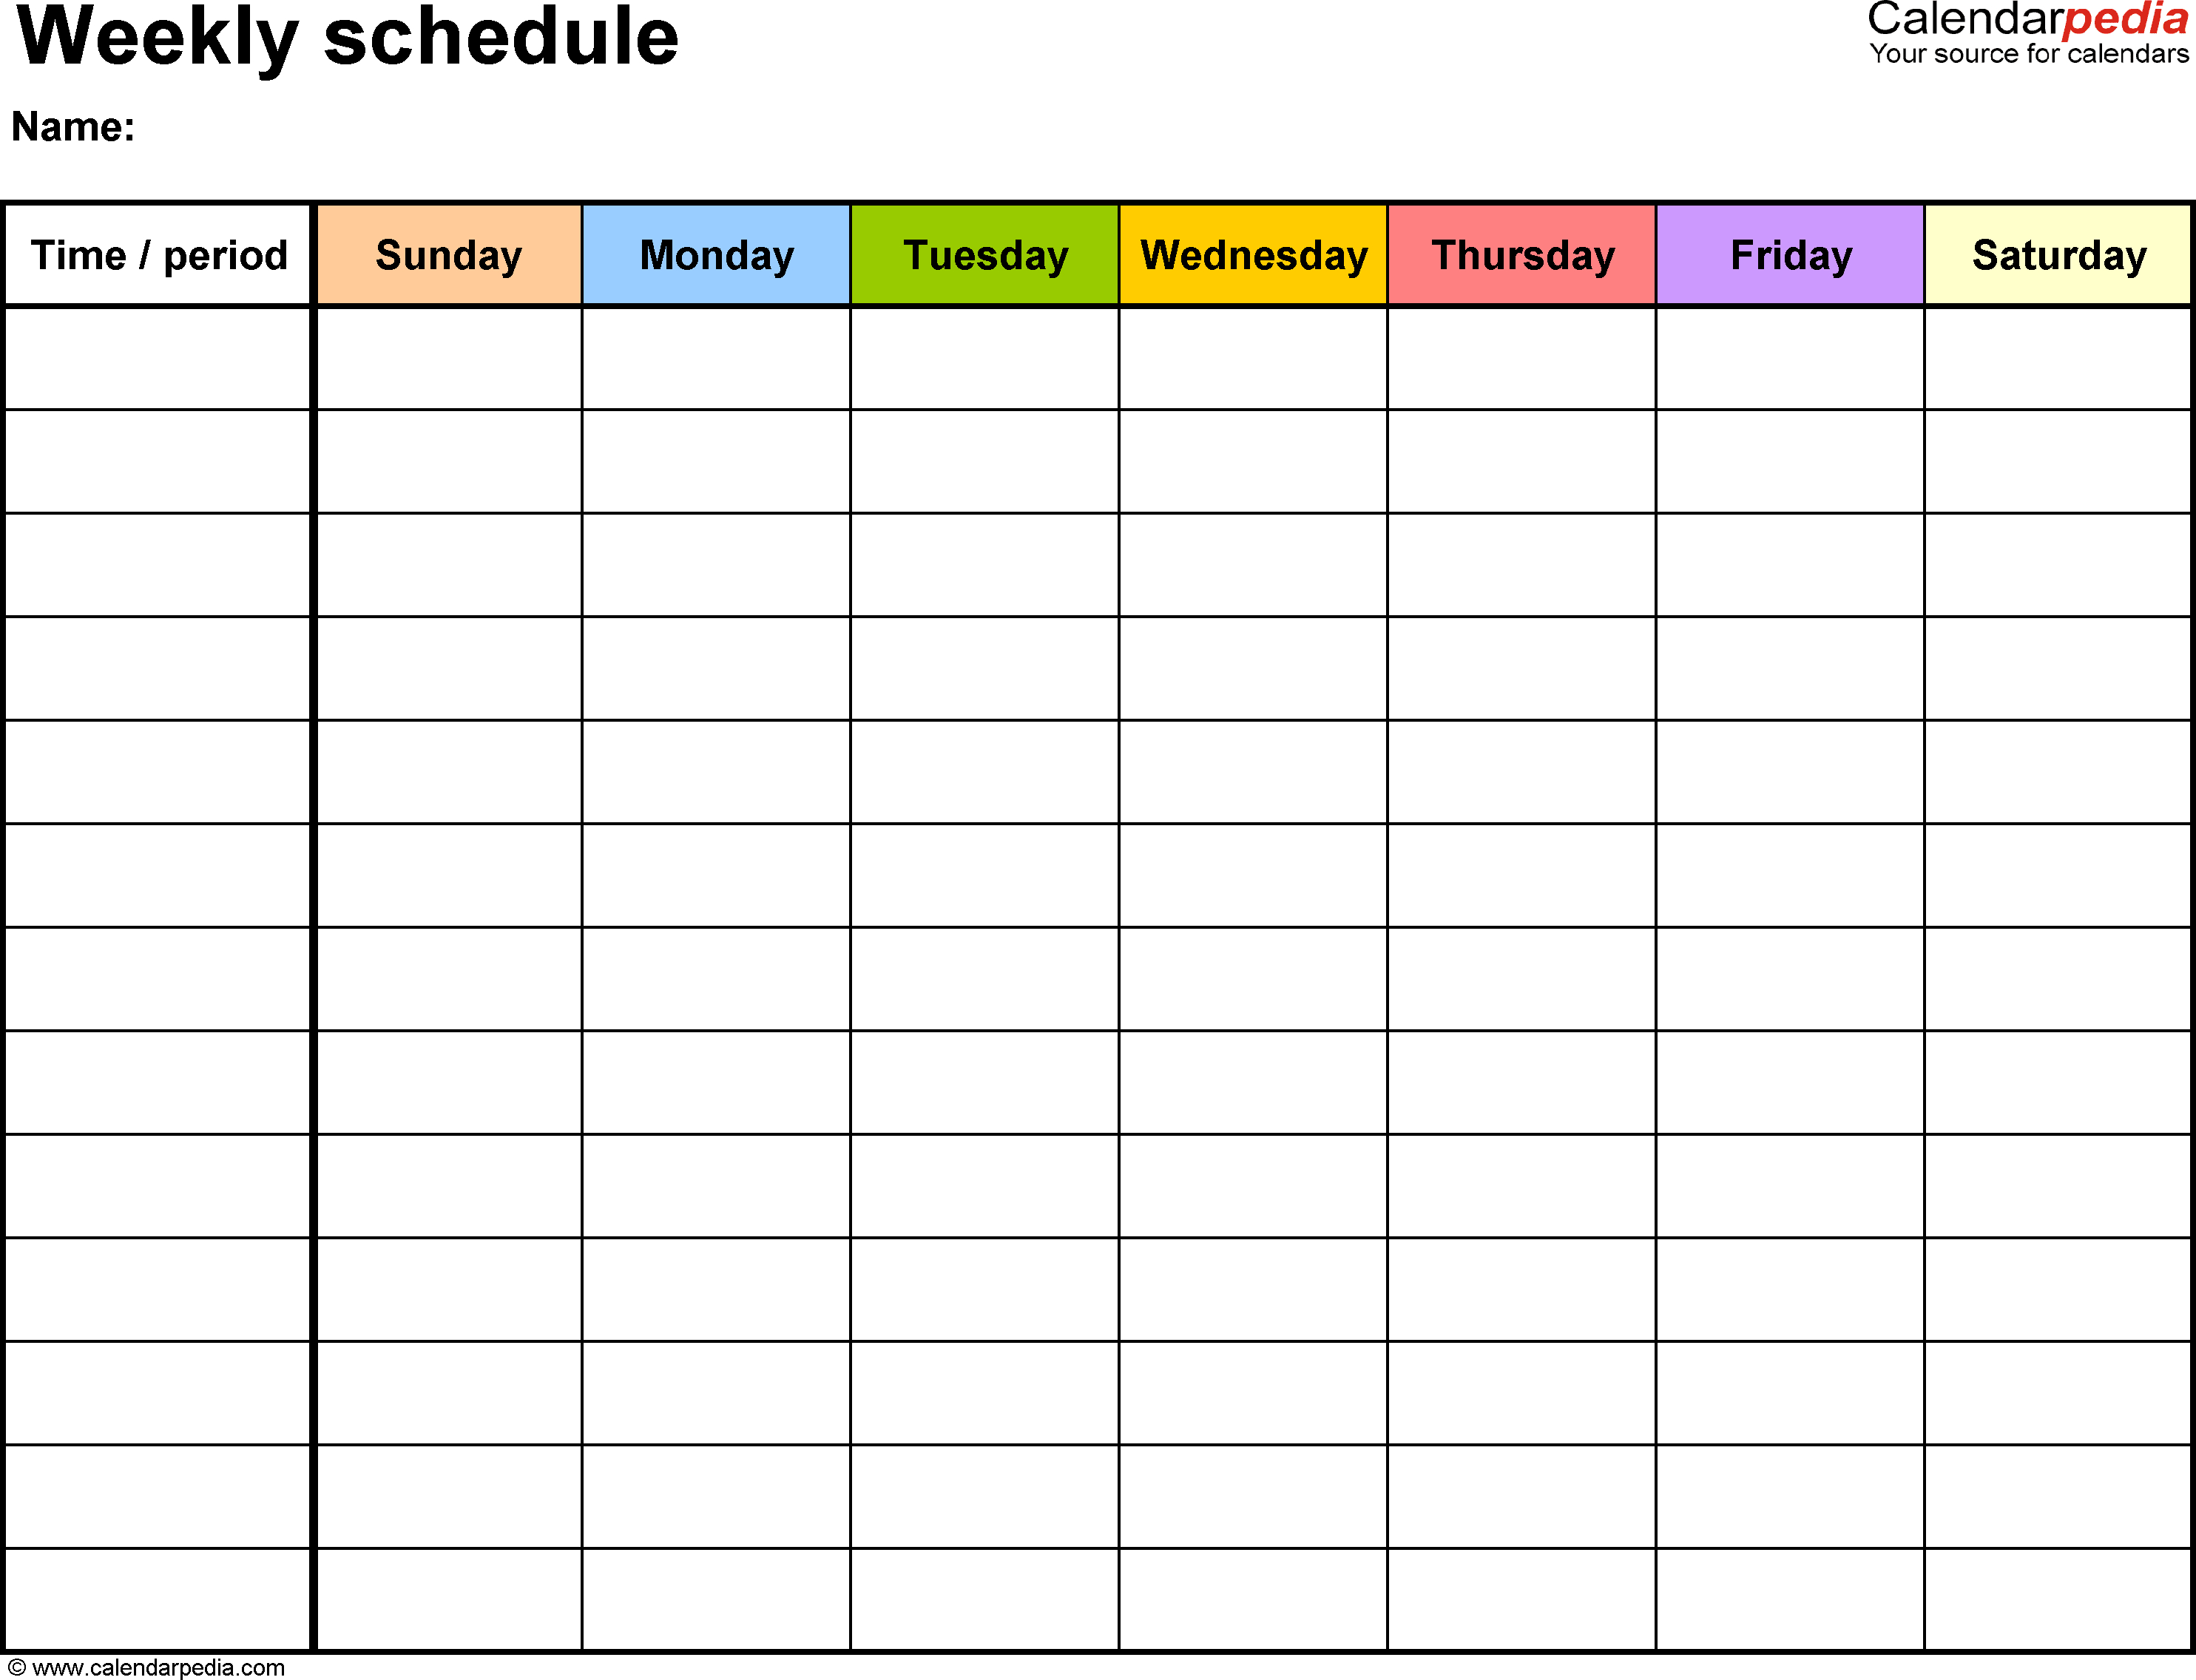 Weekly Schedule Template For Word Version 13: Landscape, 1 Saturday Through Friday Calendar Template